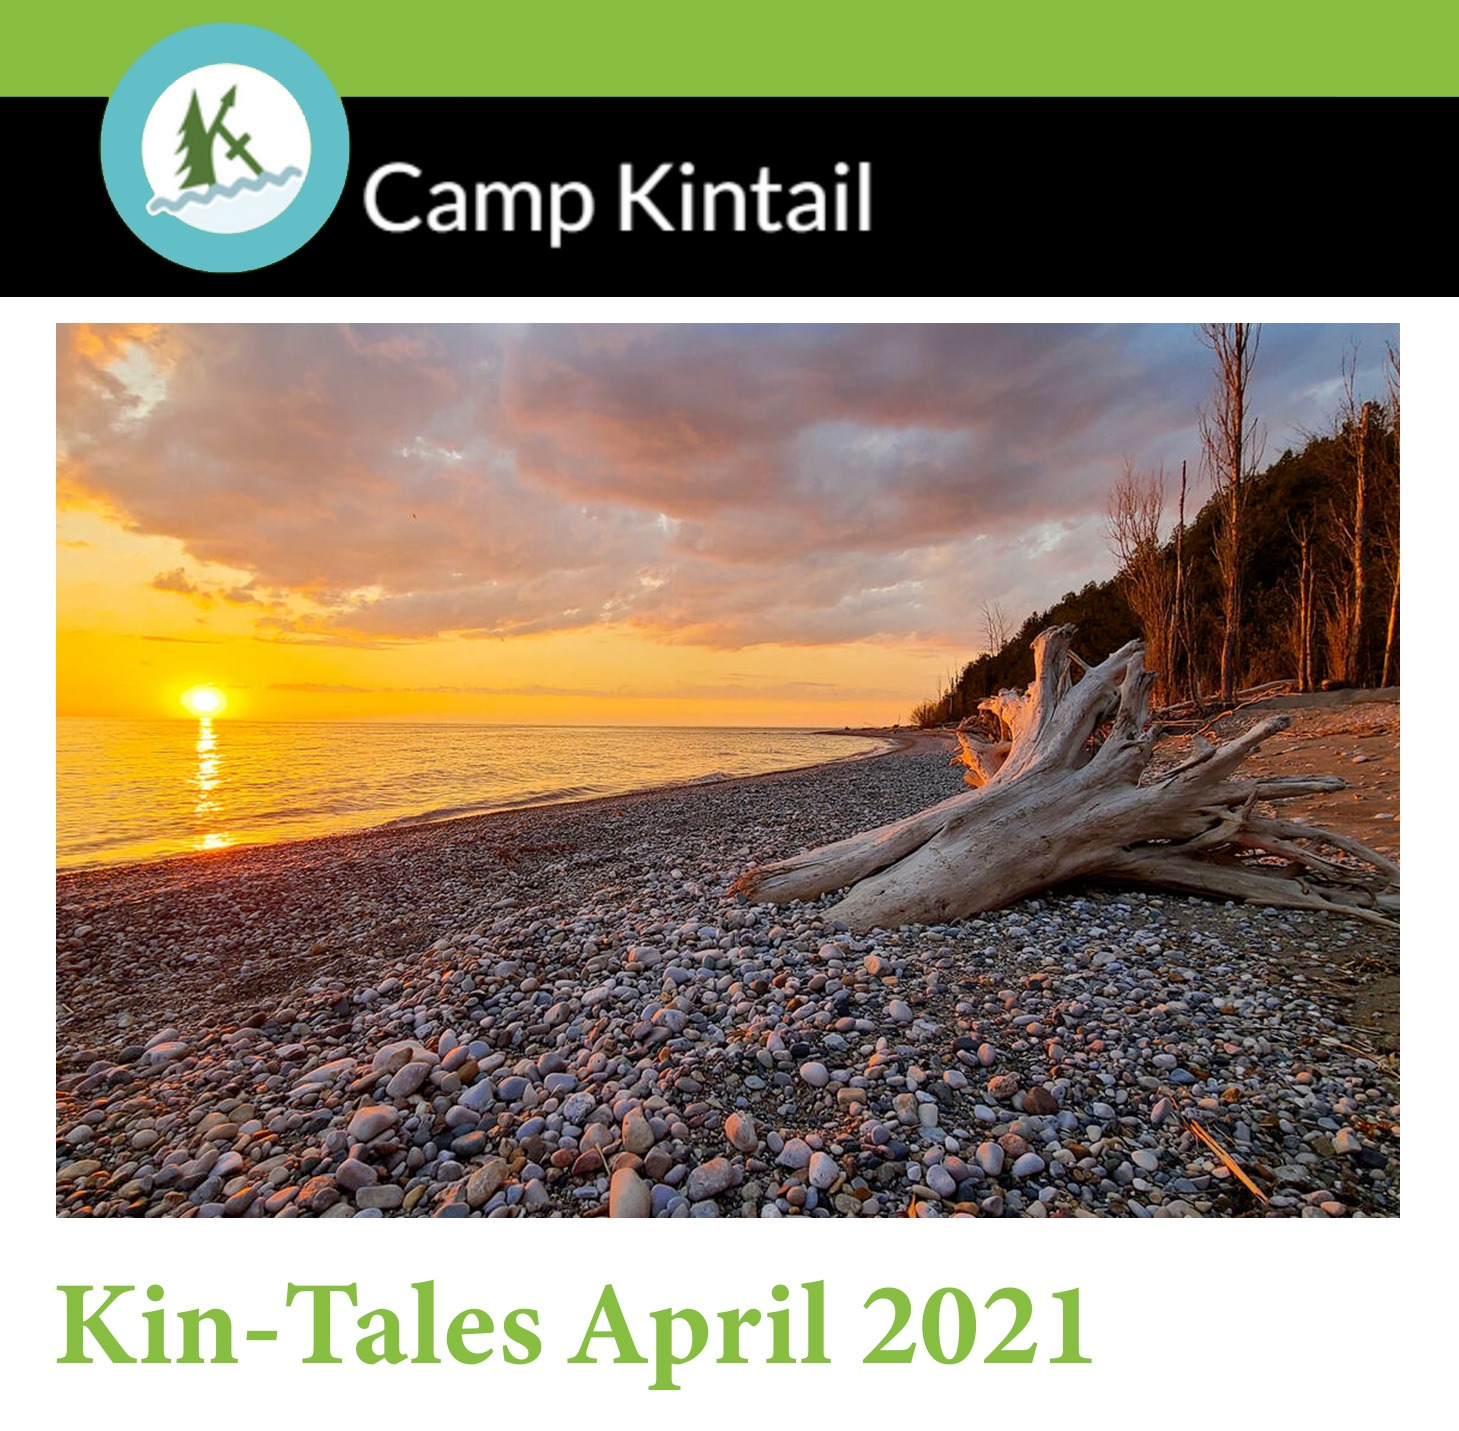 Title Text: Kin-Tales April 2021. Image: Sunset over the stones at the Kintail beach